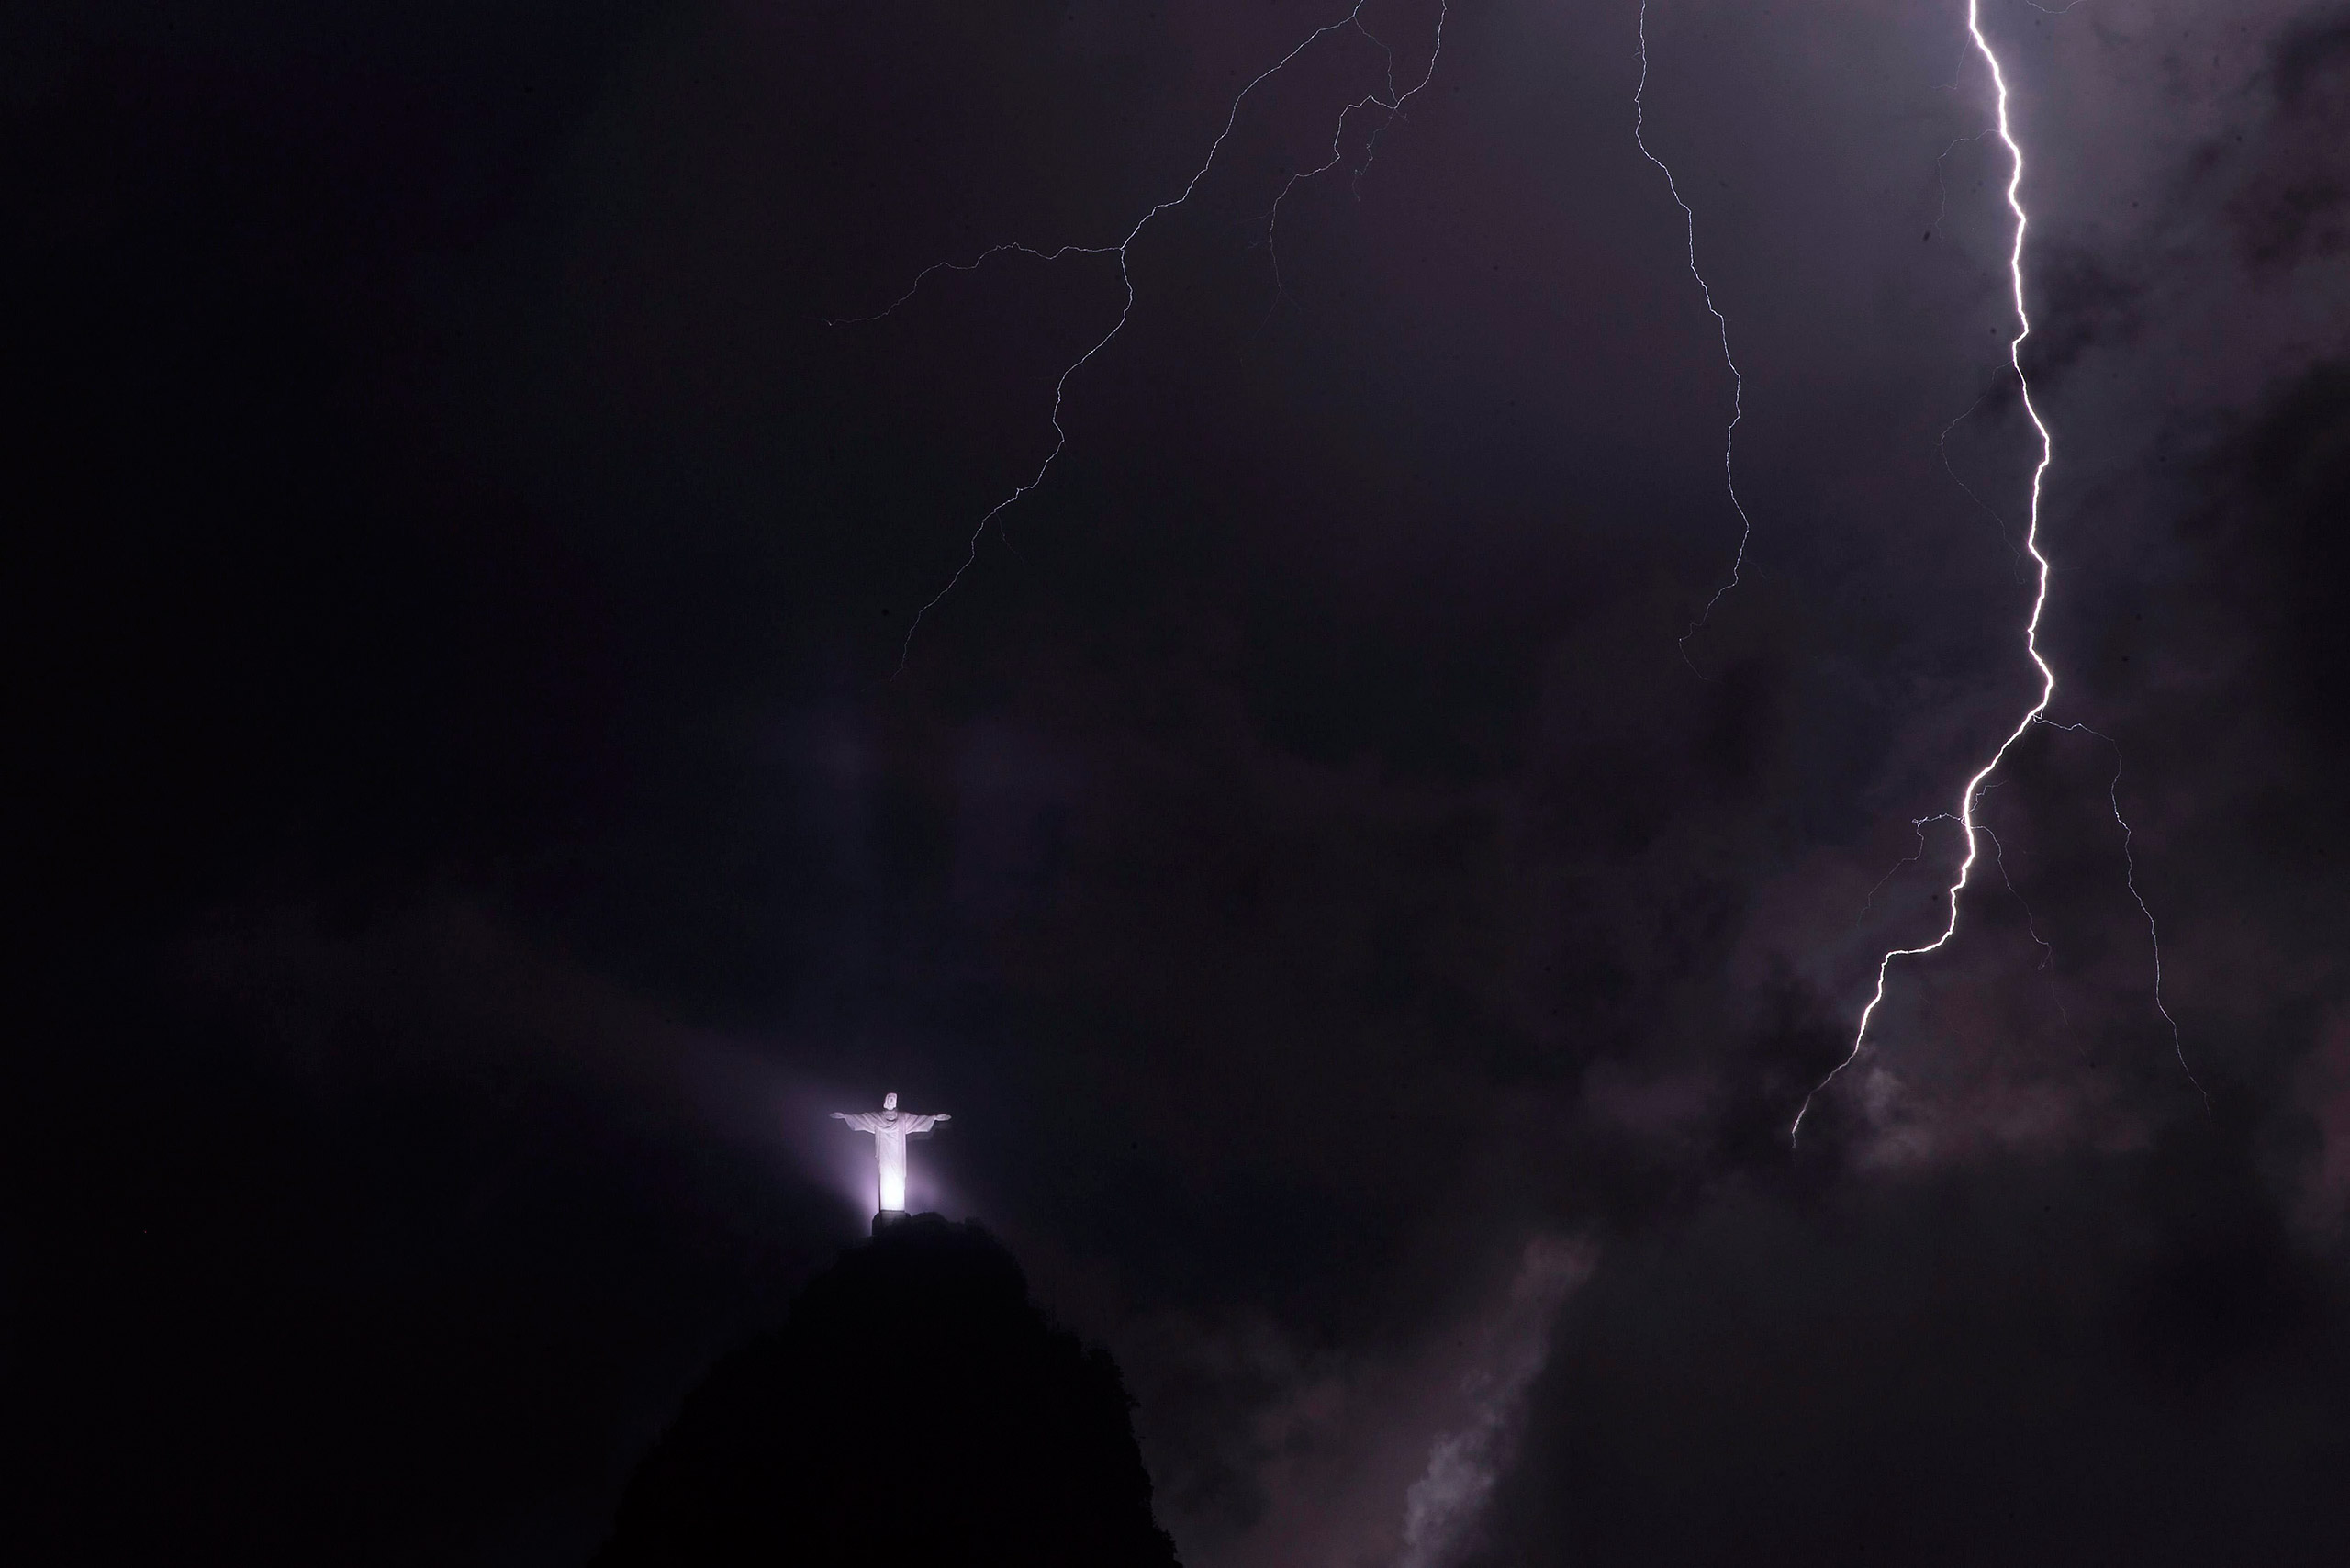 Lightning strikes near The Christ the Redeemer statue atop of Corcovado Mountain during a storm in Rio de Janeiro, Brazil, Feb. 23, 2016.